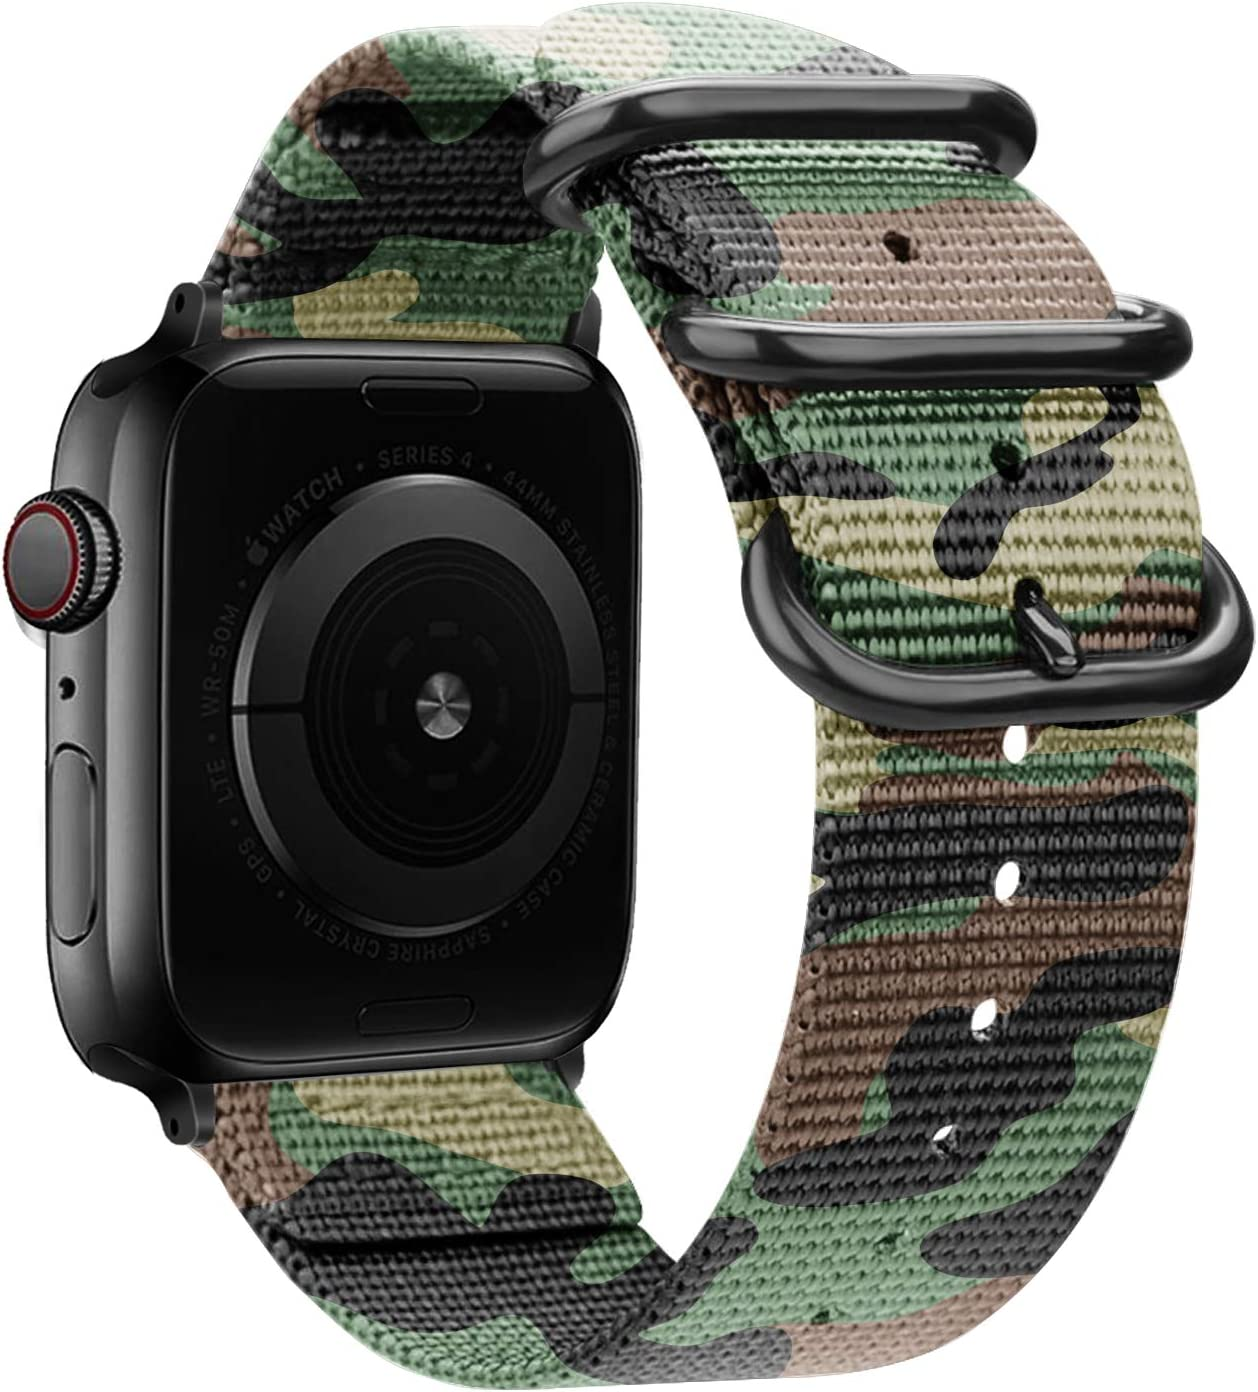 YOUKEX Soft Nylon Band Compatible with Apple Watch Band 38MM 40MM, Lightweight Breathable Sport Wrist Strap with Metal Buckle Compatible with iwatch Series 6/5/4/3/2/2 SE (38mm/40mm,Camouflage Green)